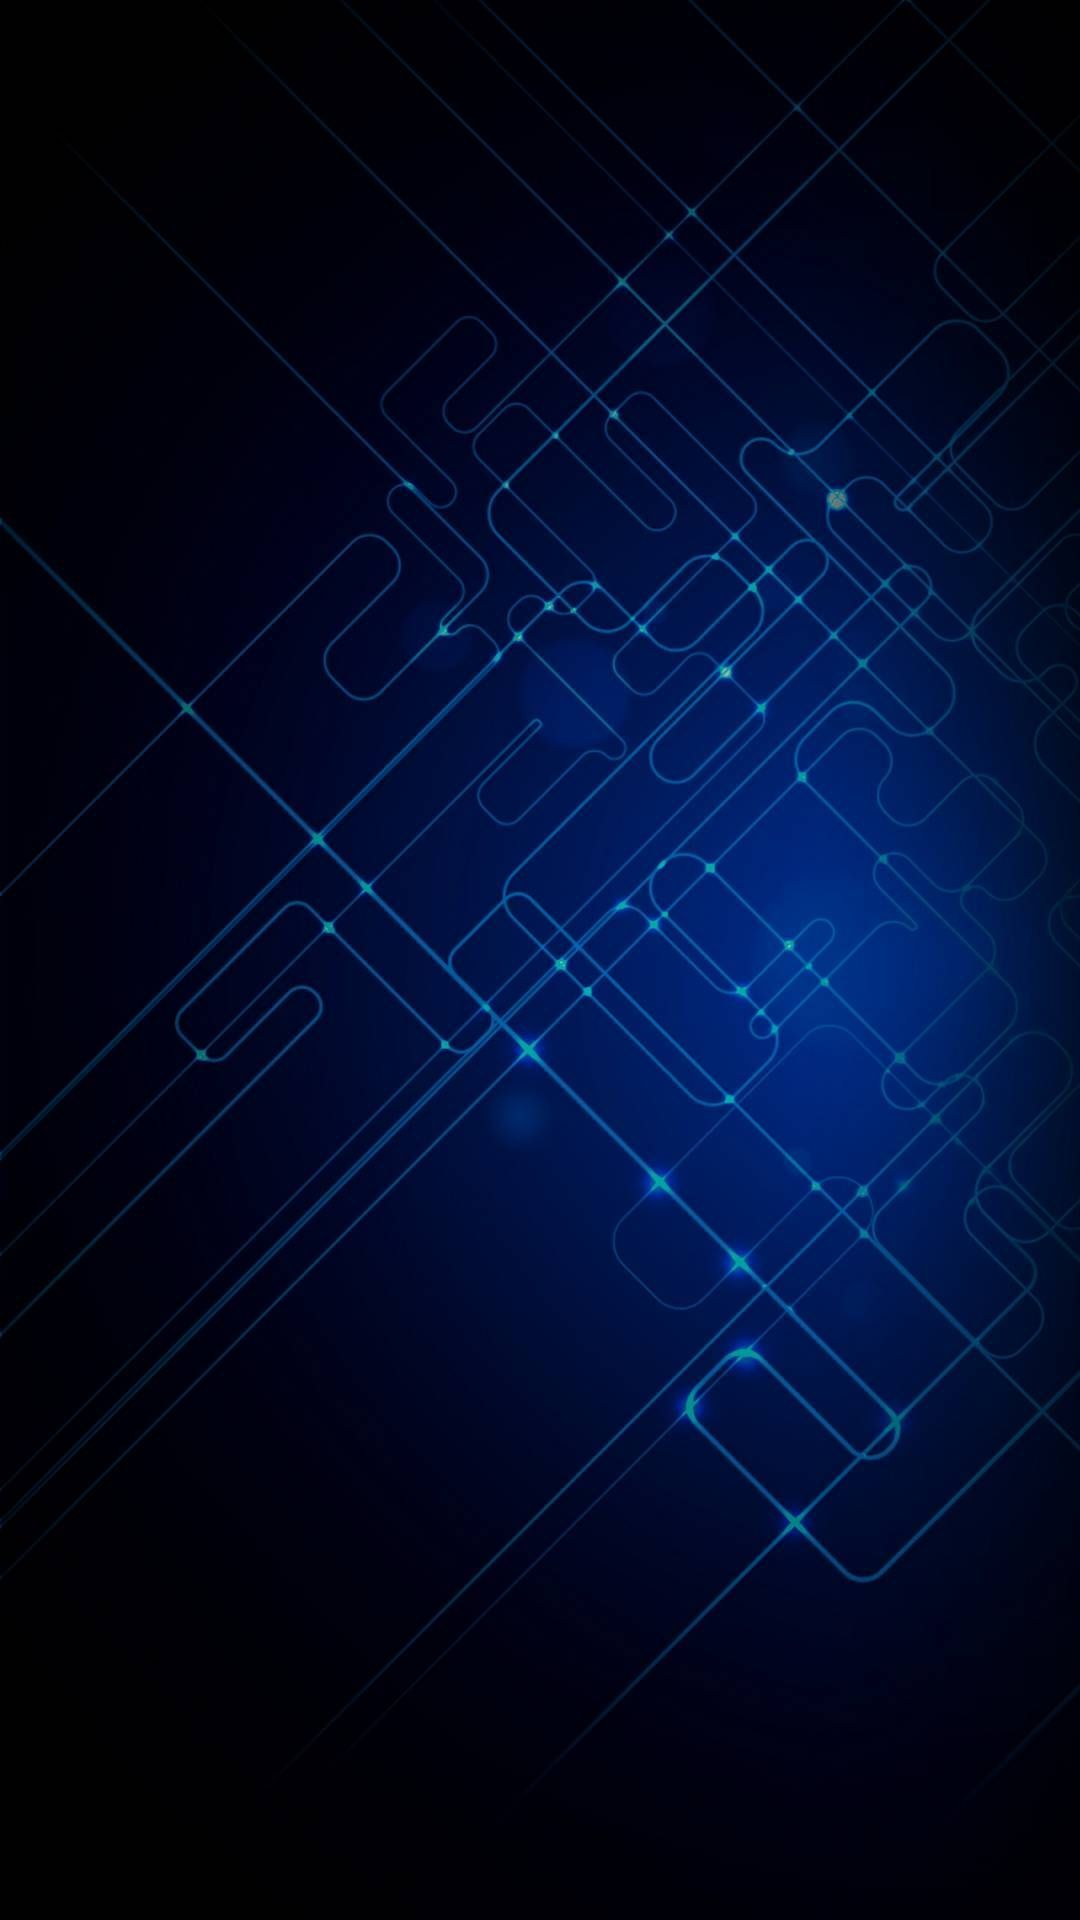 Pin By Wallpapersparty On Dark Iphone Wallpaper Circuit Board Wallpapers Hd Quality Check More At Https 22498